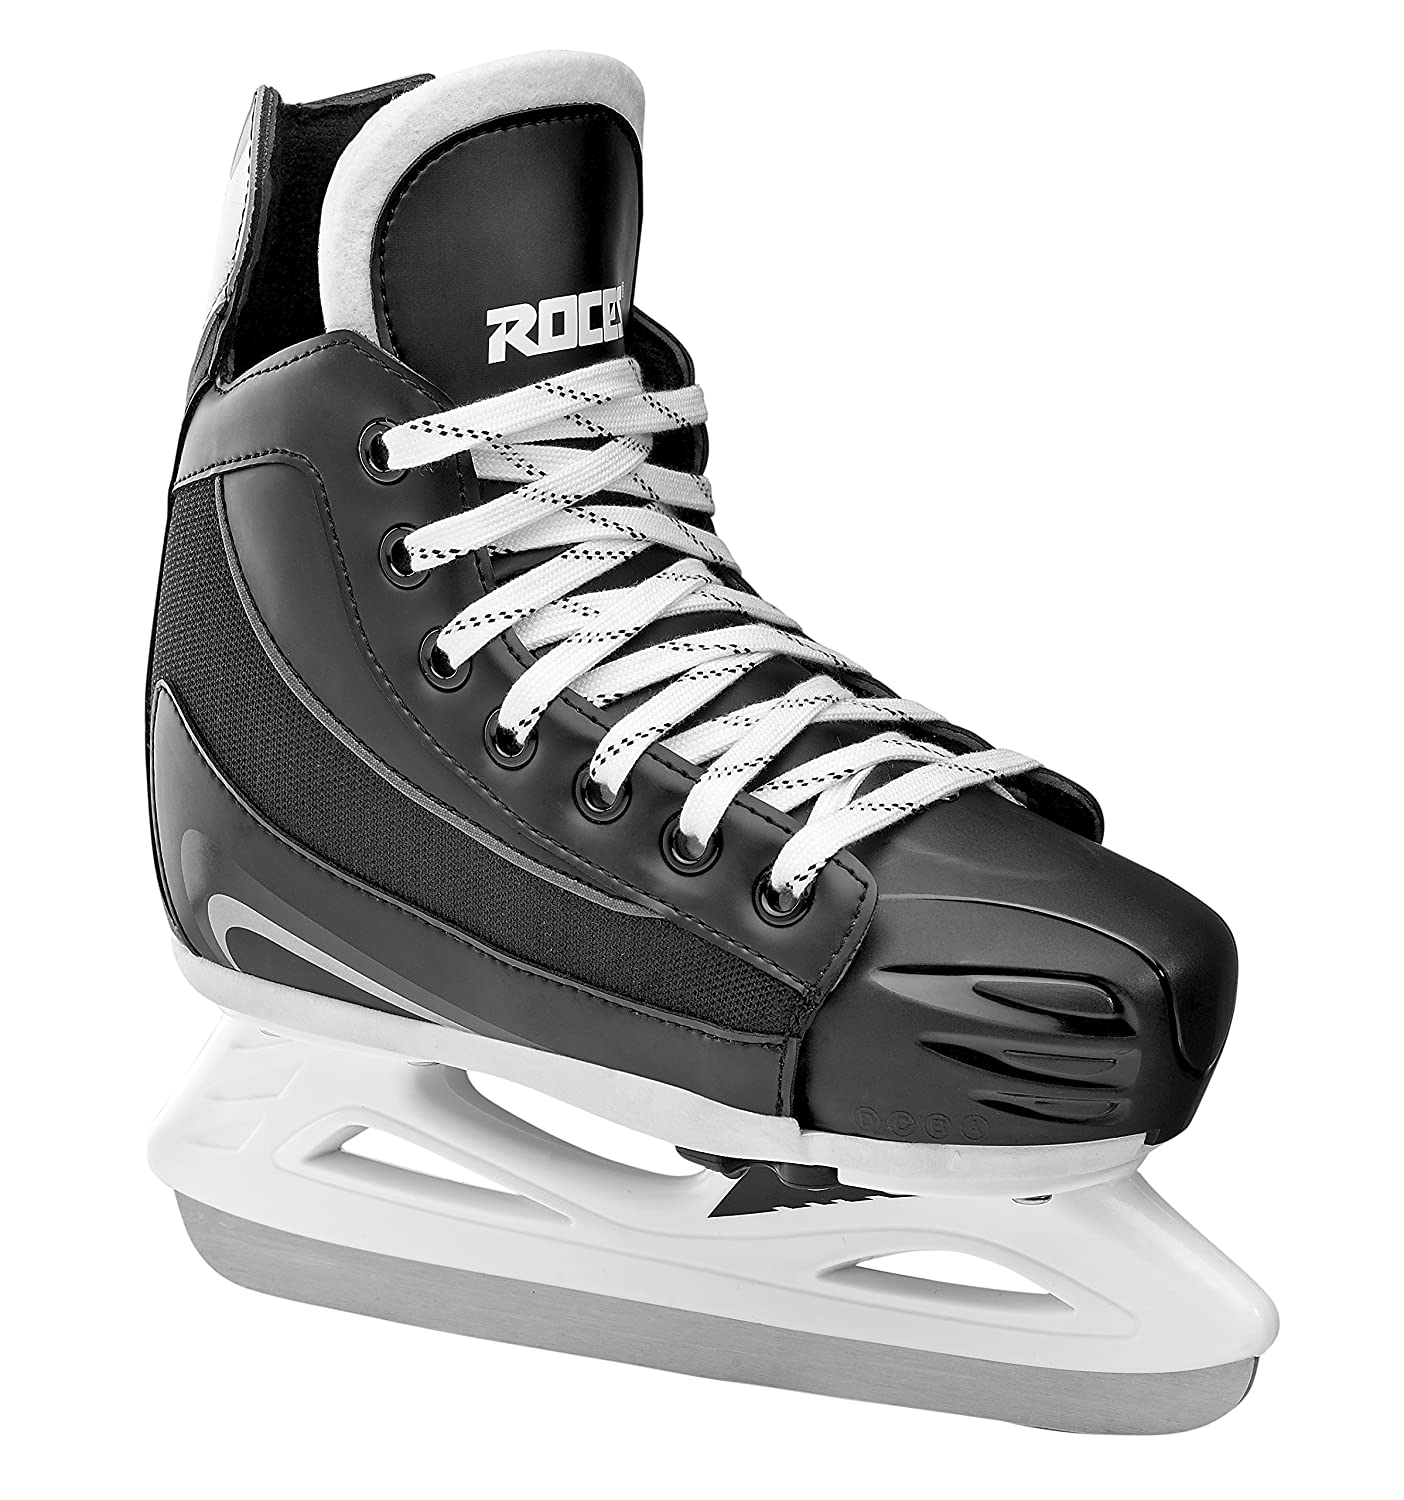 Roces Niños Face Off Patines ROCCH|#Roces 450636-001